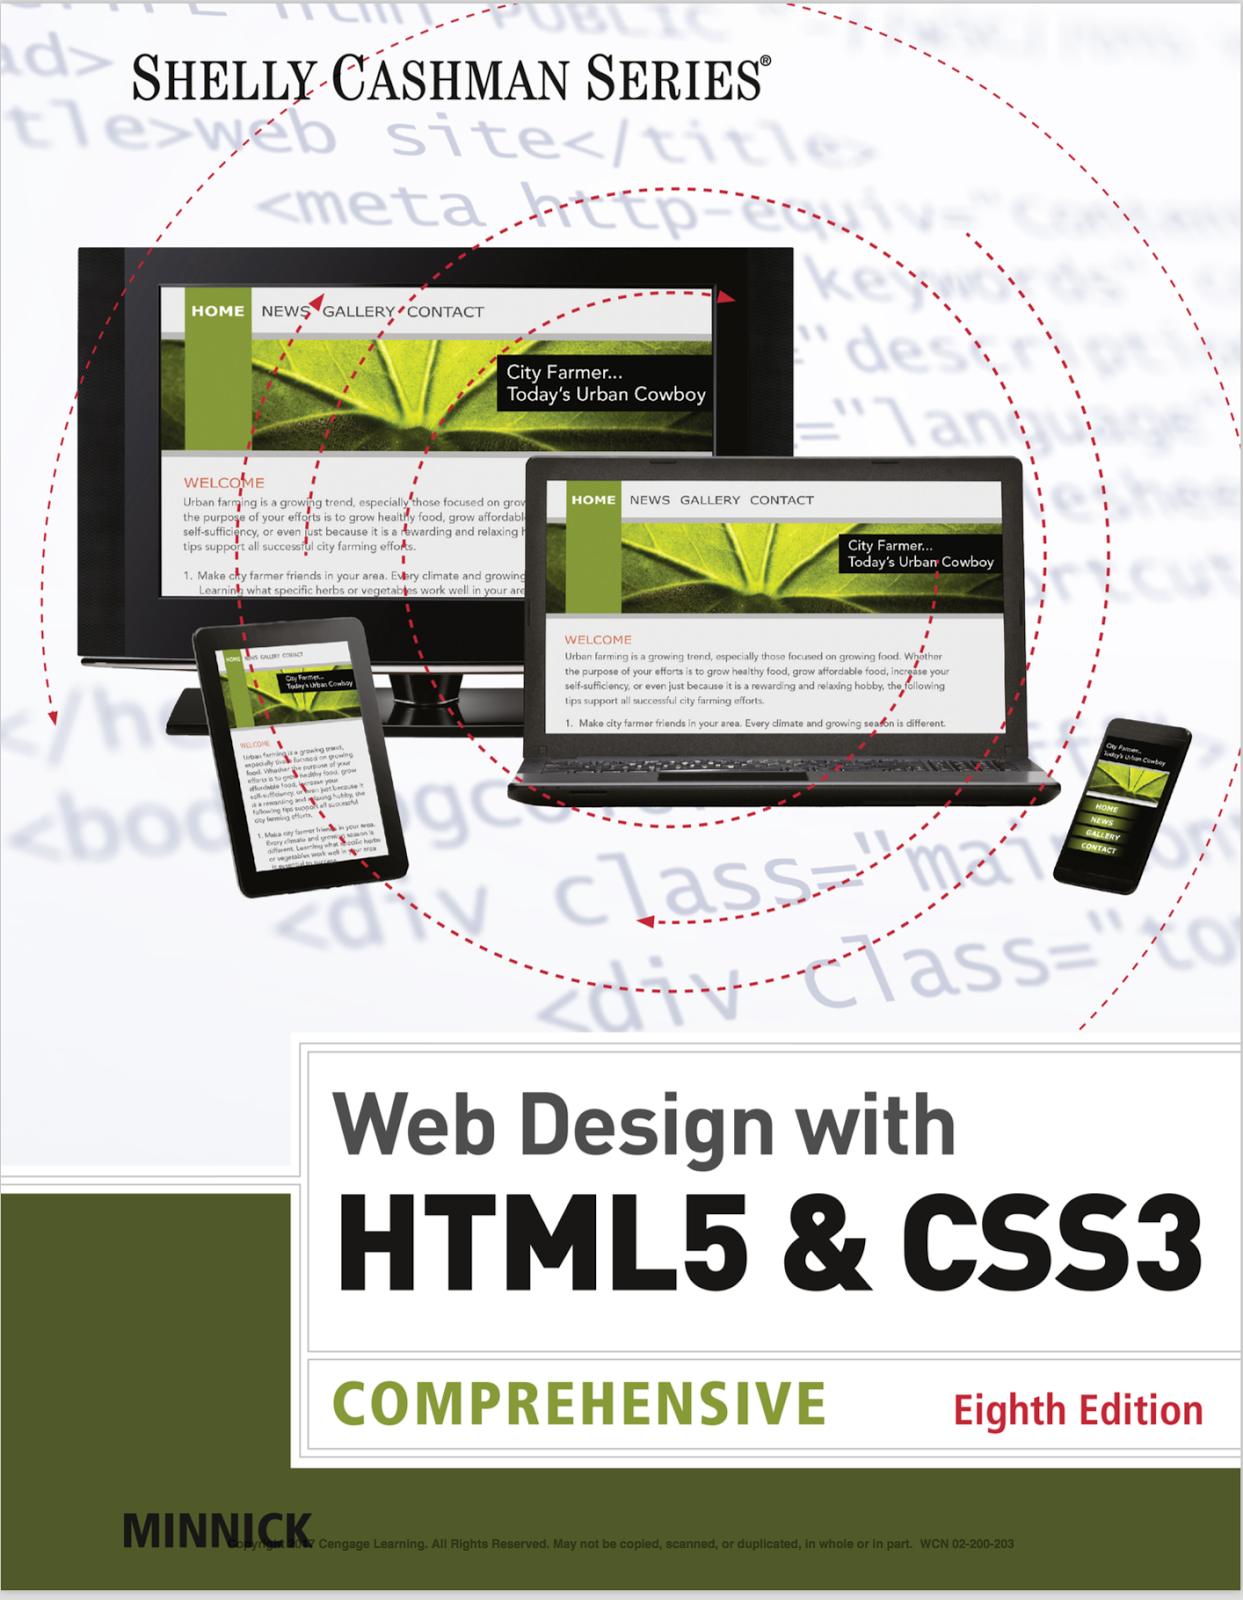 Web Design With Html5 And Css3 Comprehensive Eighth Edition Download Pdf Programming Ebook